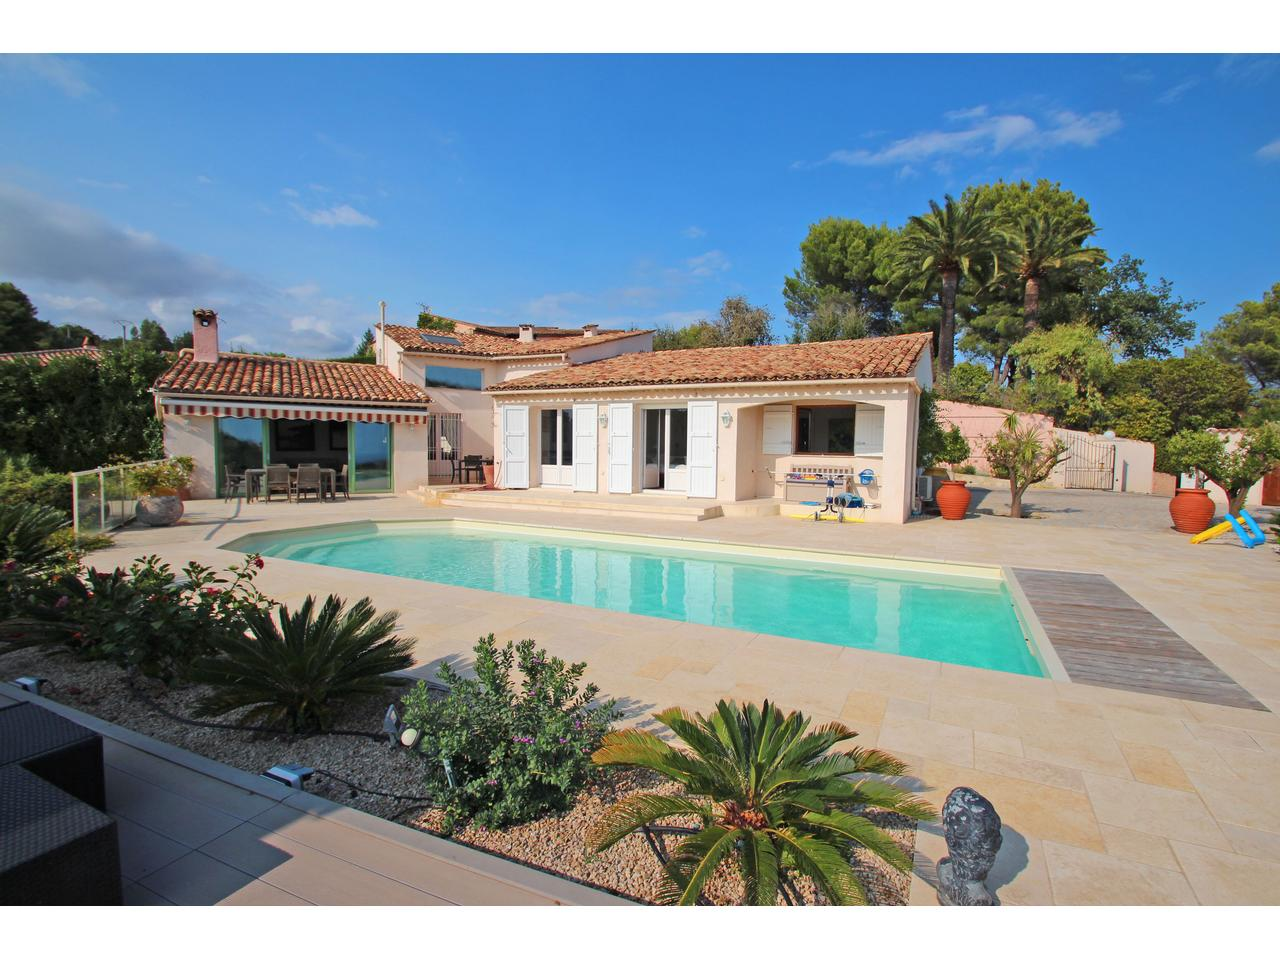 Maison a vendre sud france avec piscine avie home for Villa piscine sud france